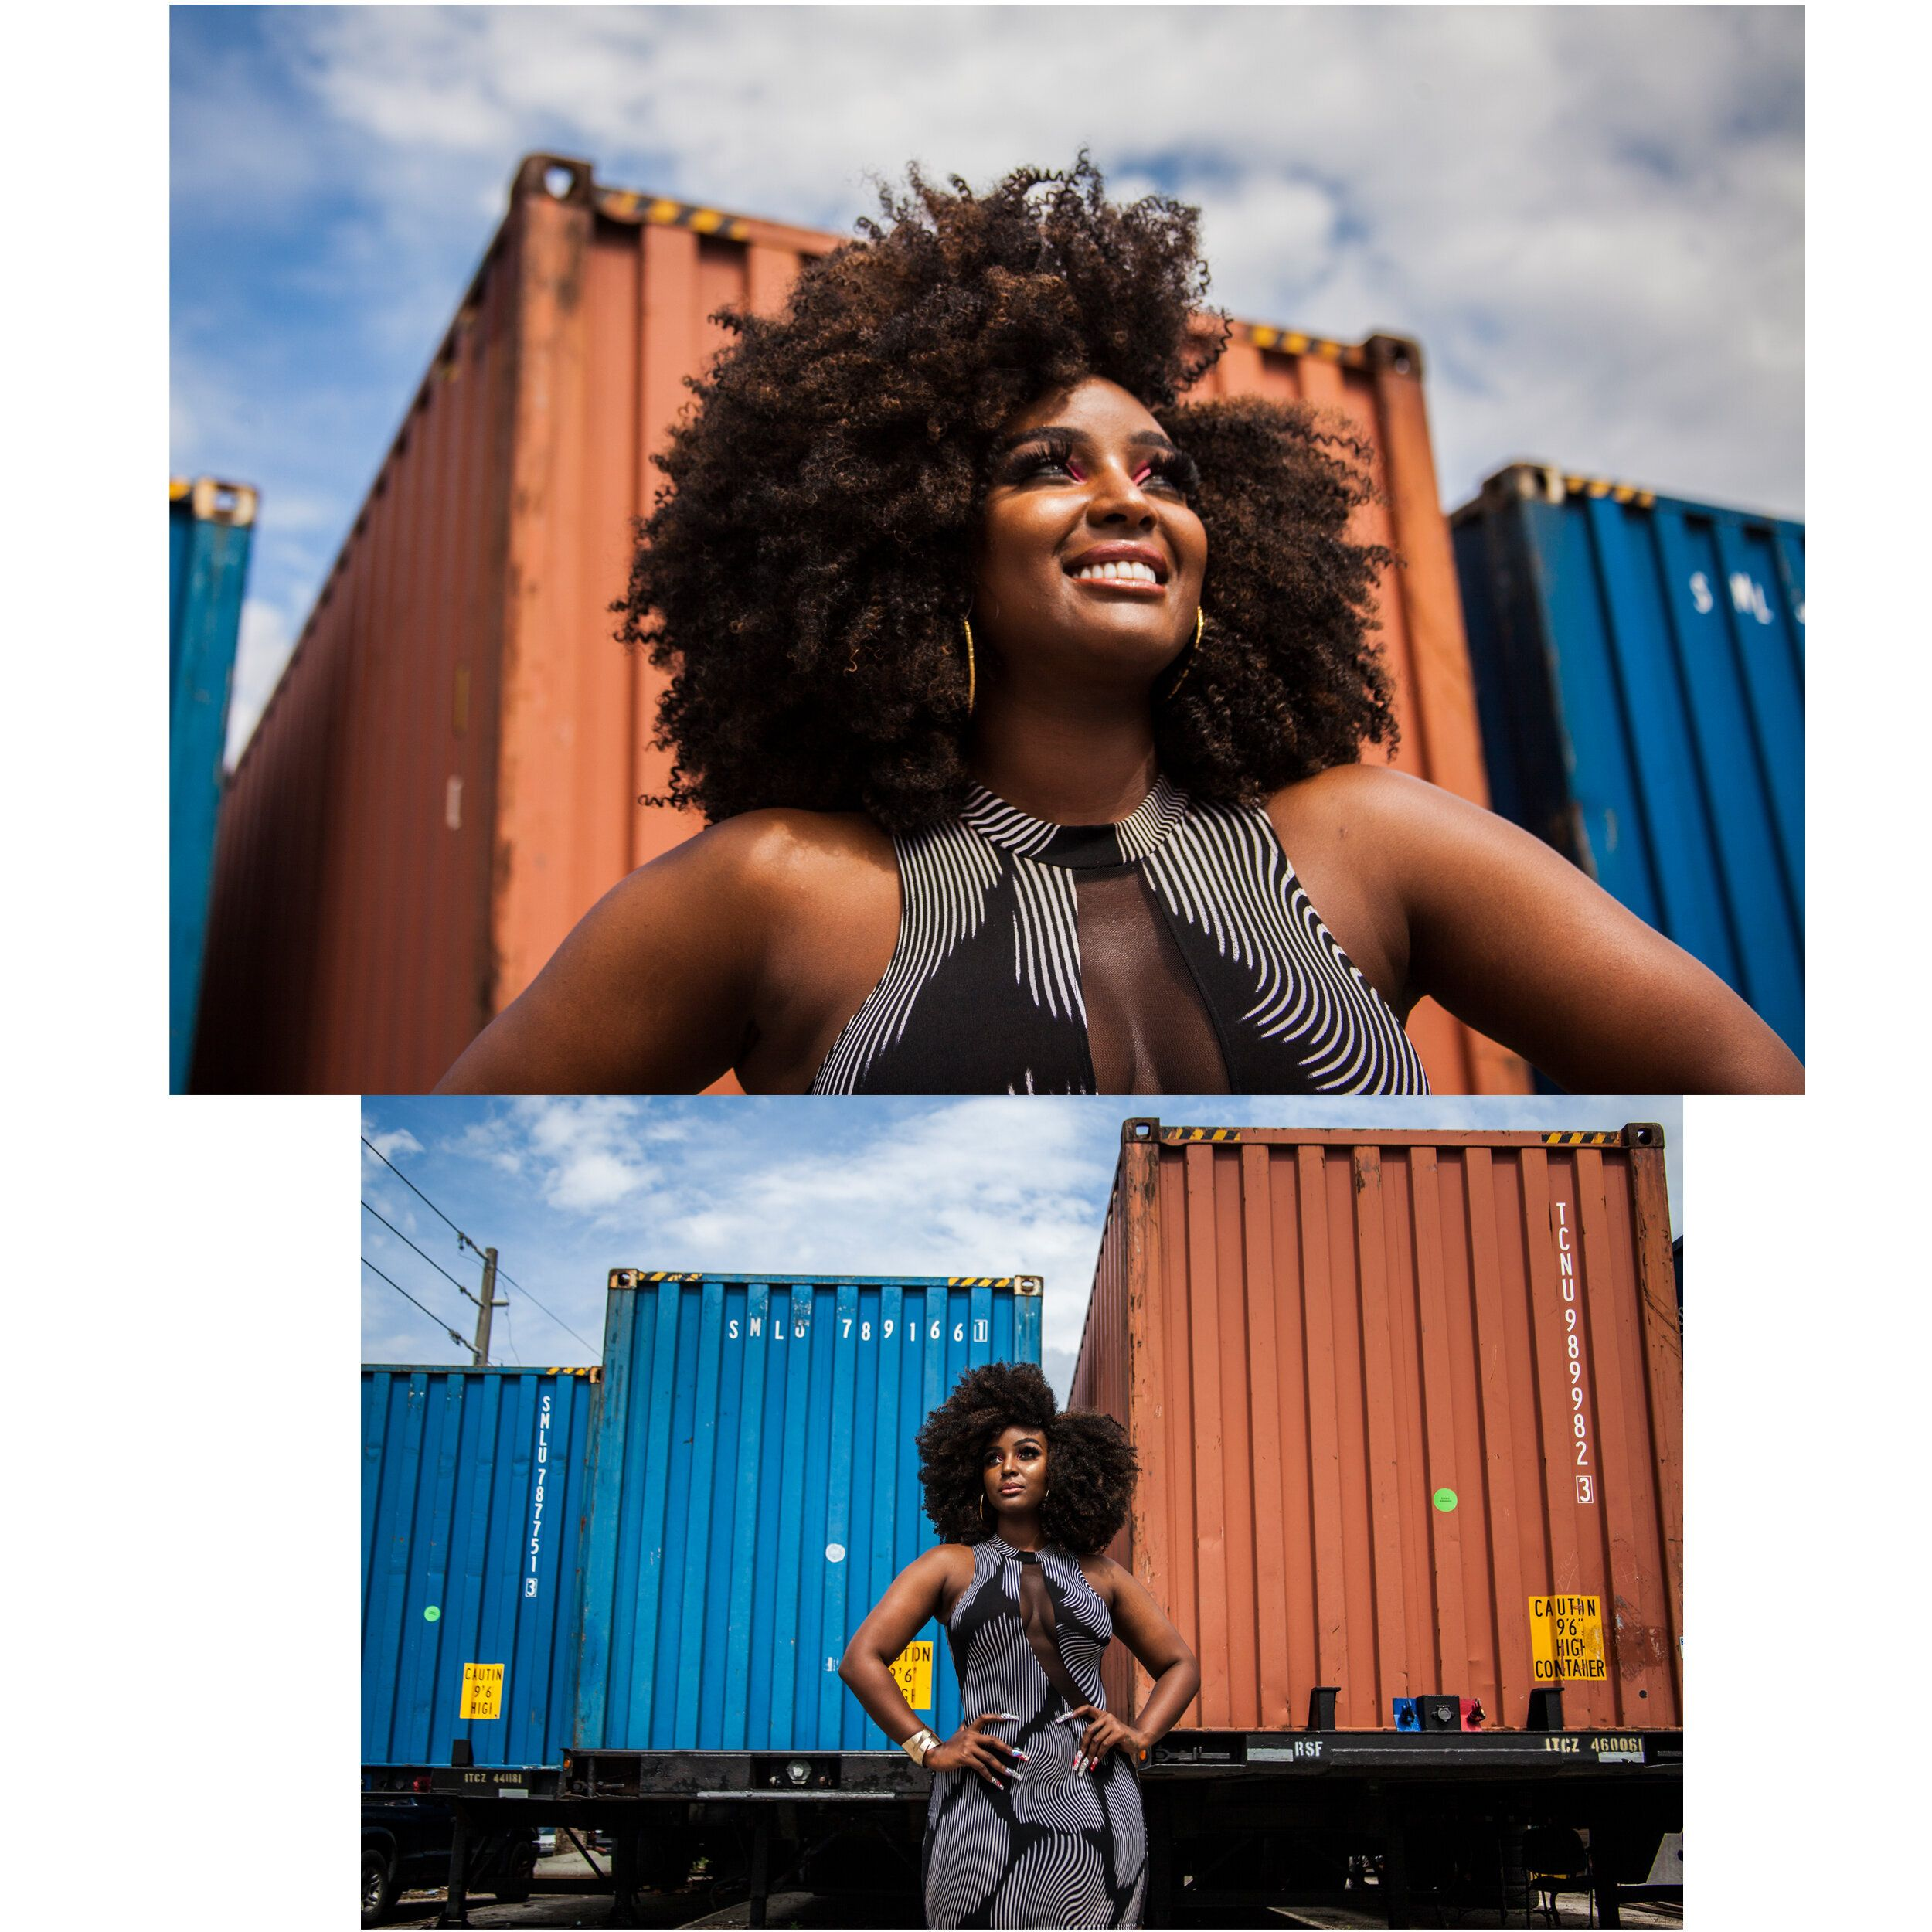 Amara La Negra, a Dominican-American hip-hop artist stands and poses in Miami, Florida on Aug. 29, 2019.